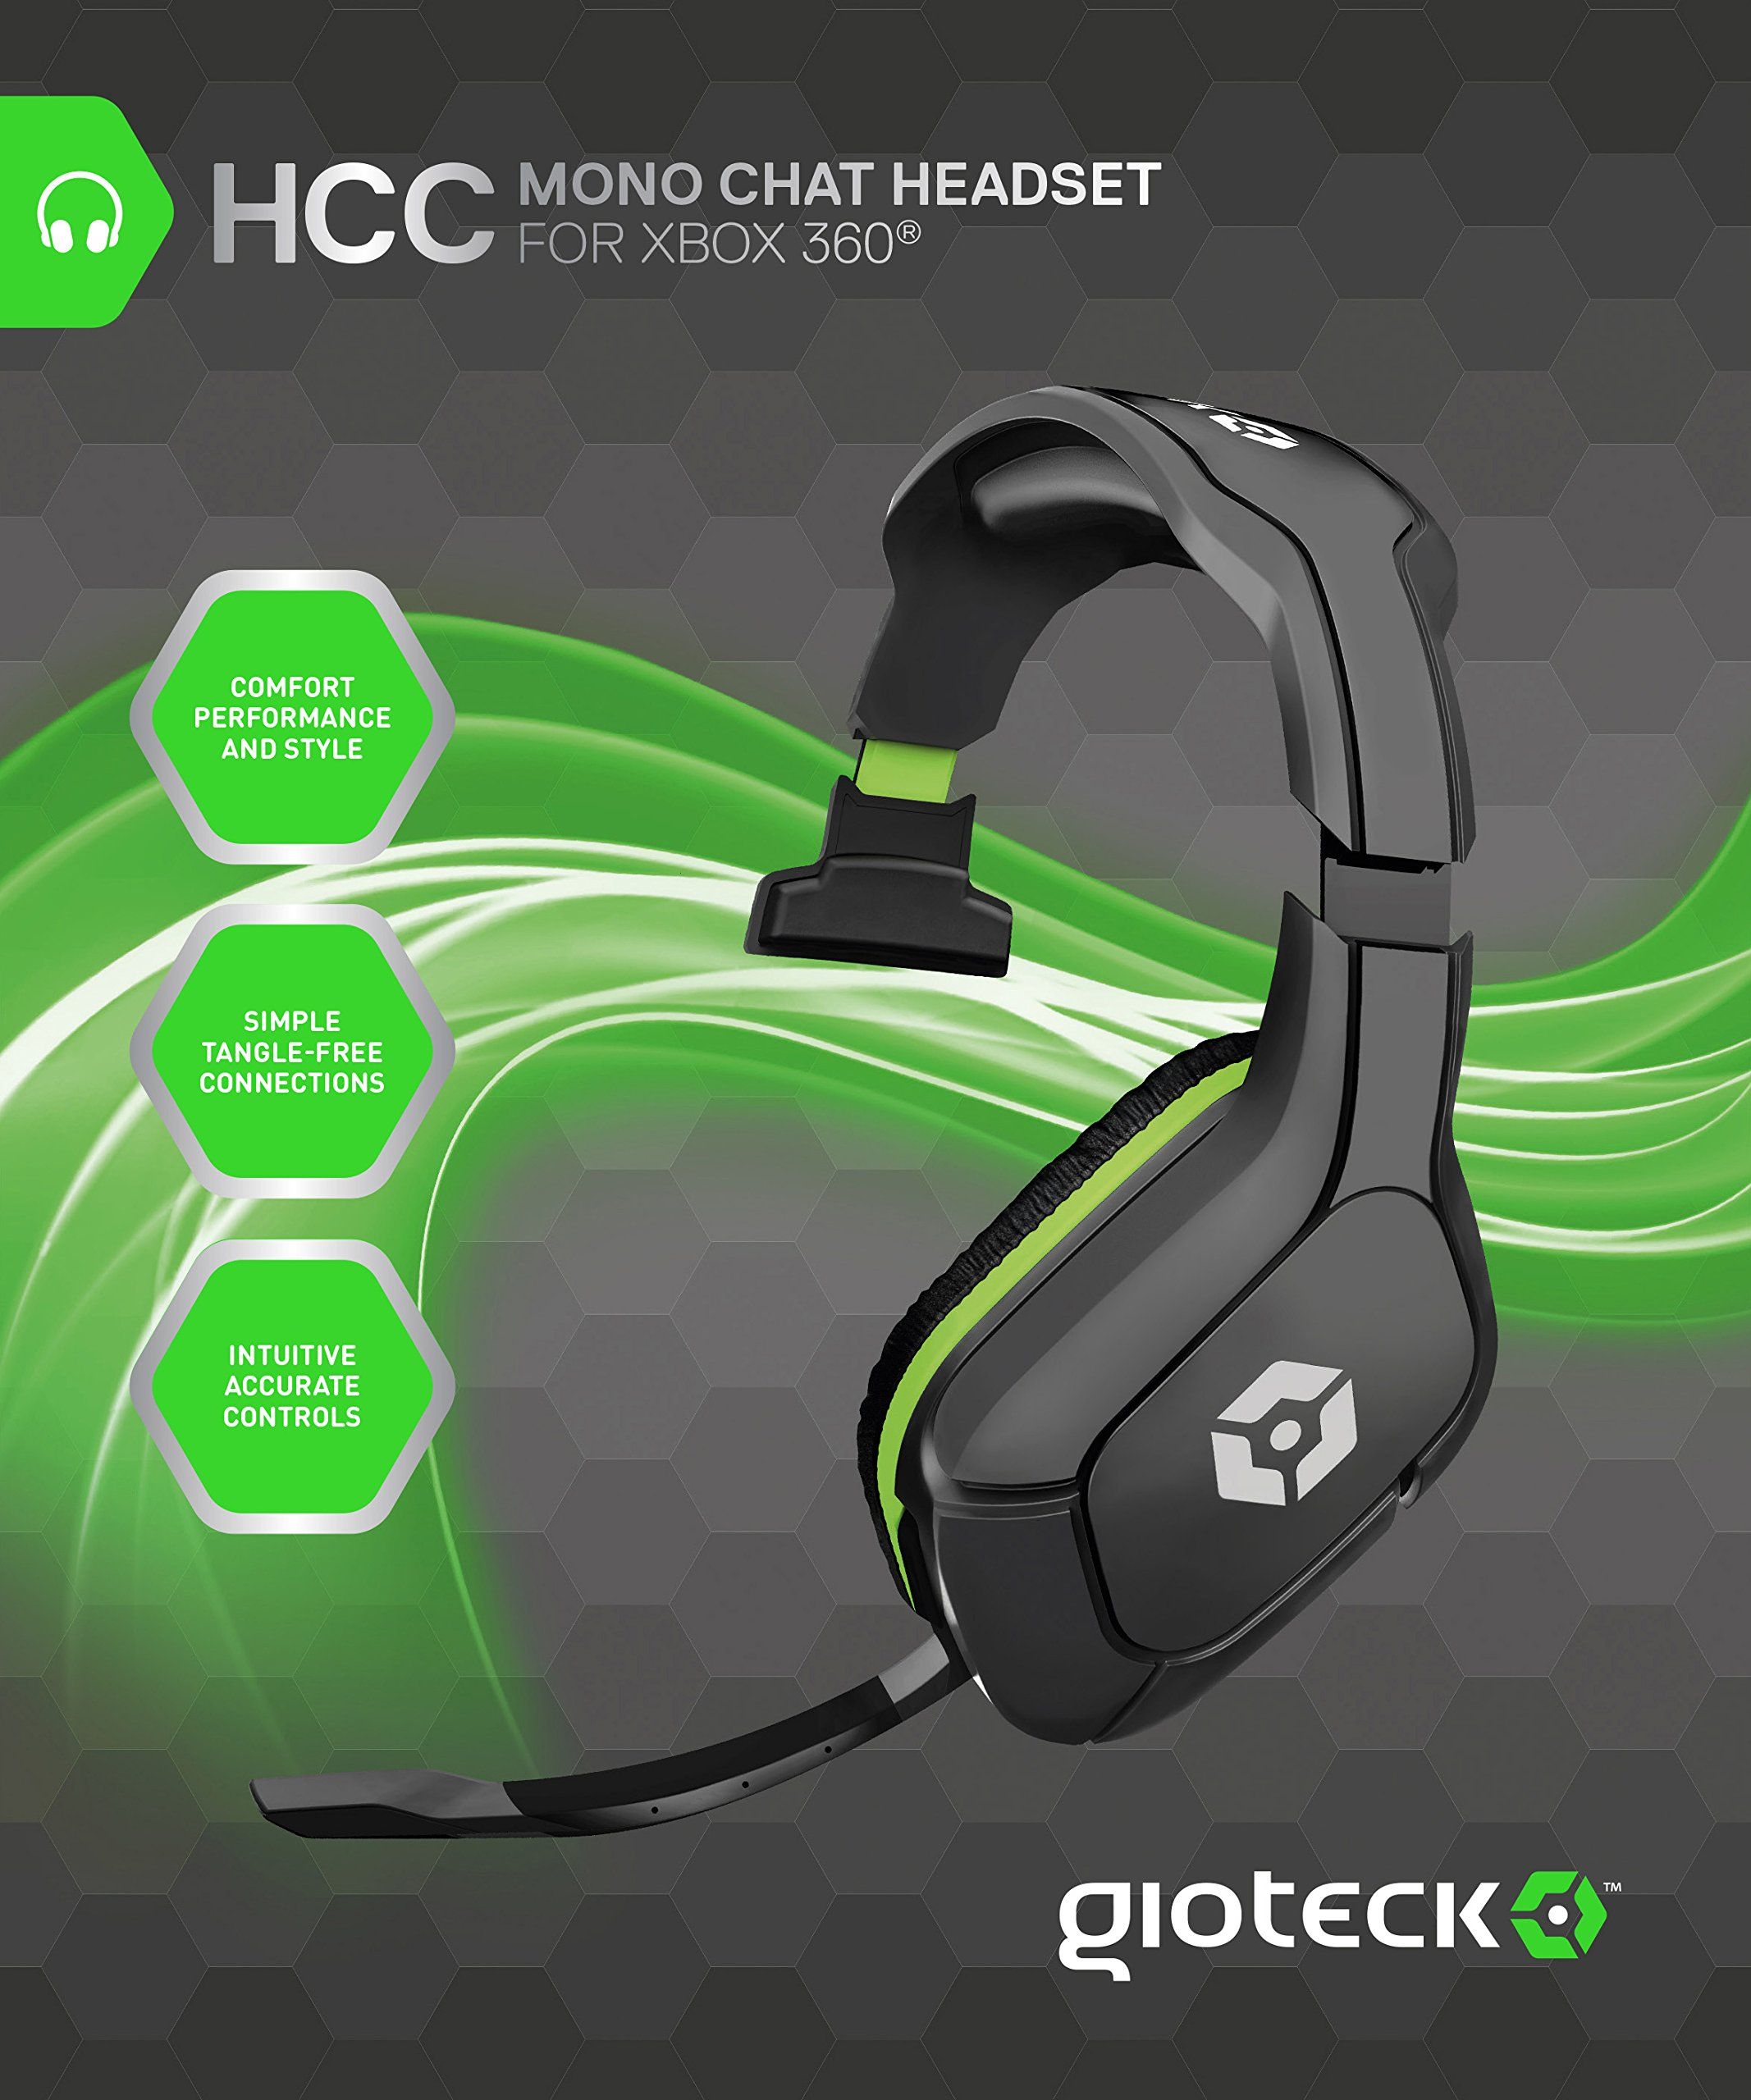 Gioteck HCC Wired Mono Chat Headset - Xbox 360 by Gioteck